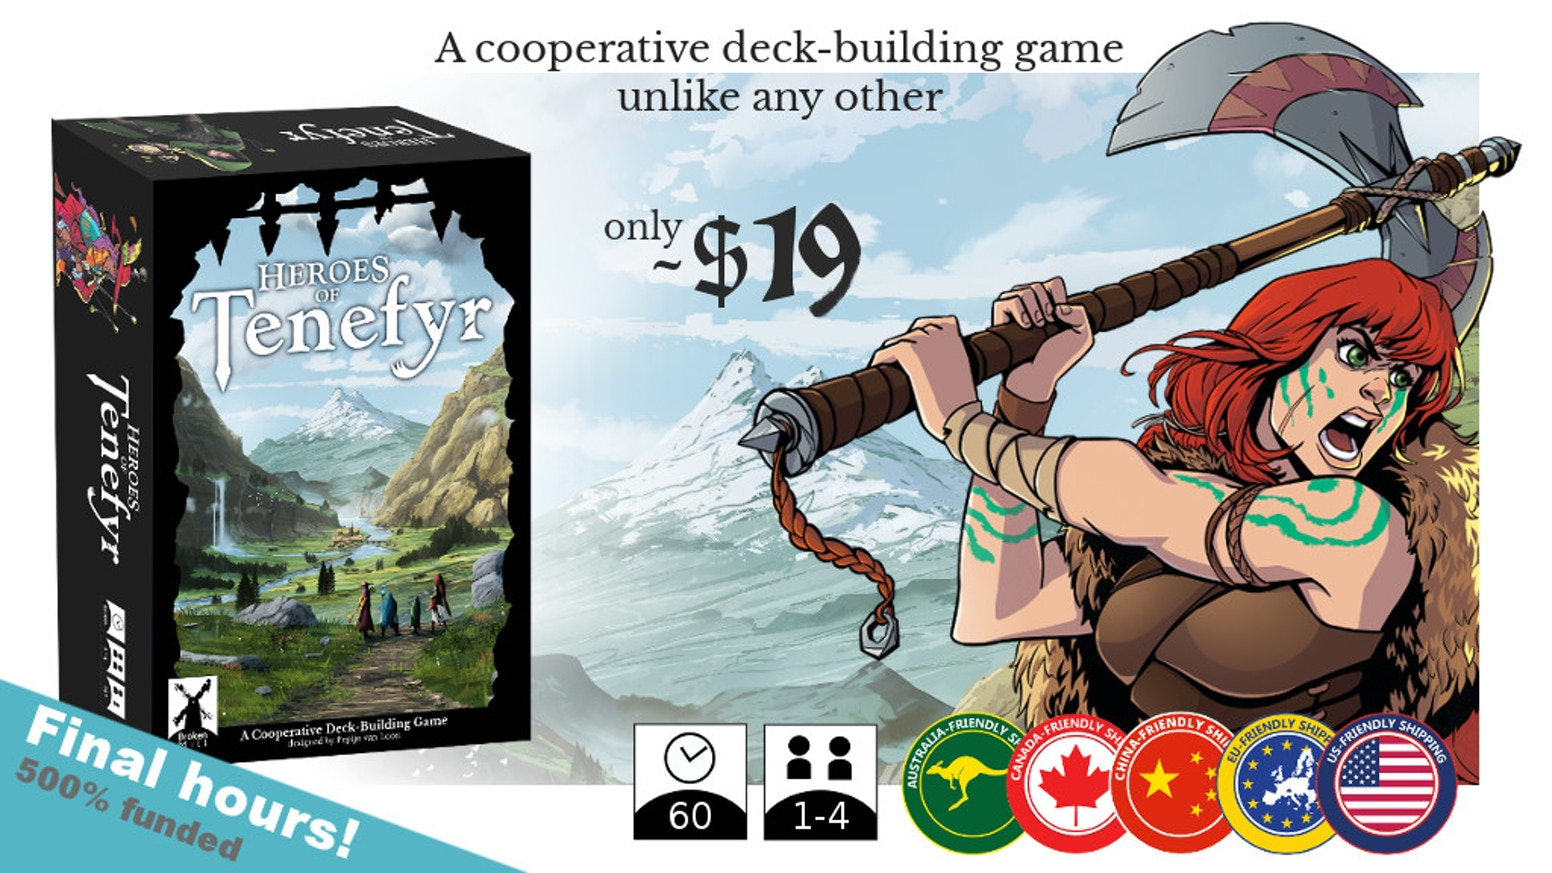 A cooperative deck-building game for 1-4 players with push your luck elements and a different approach to deck-building.